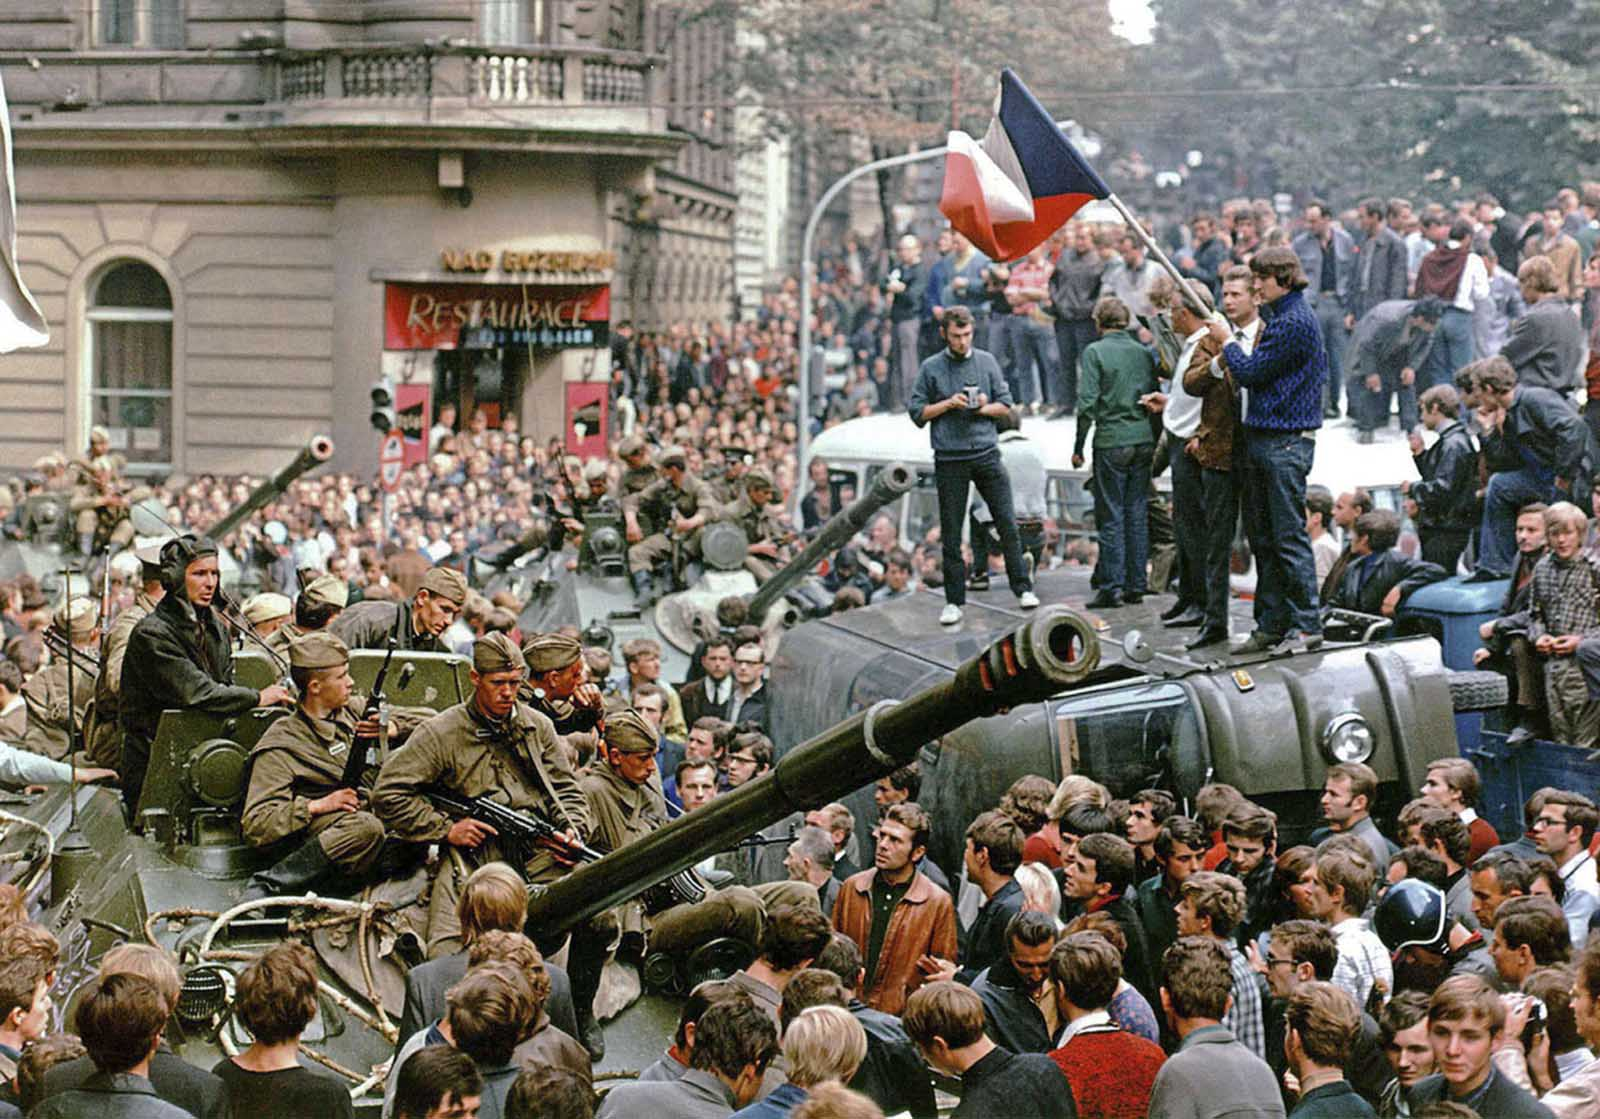 When the Soviets arrived to crush the Prague Spring, 1968